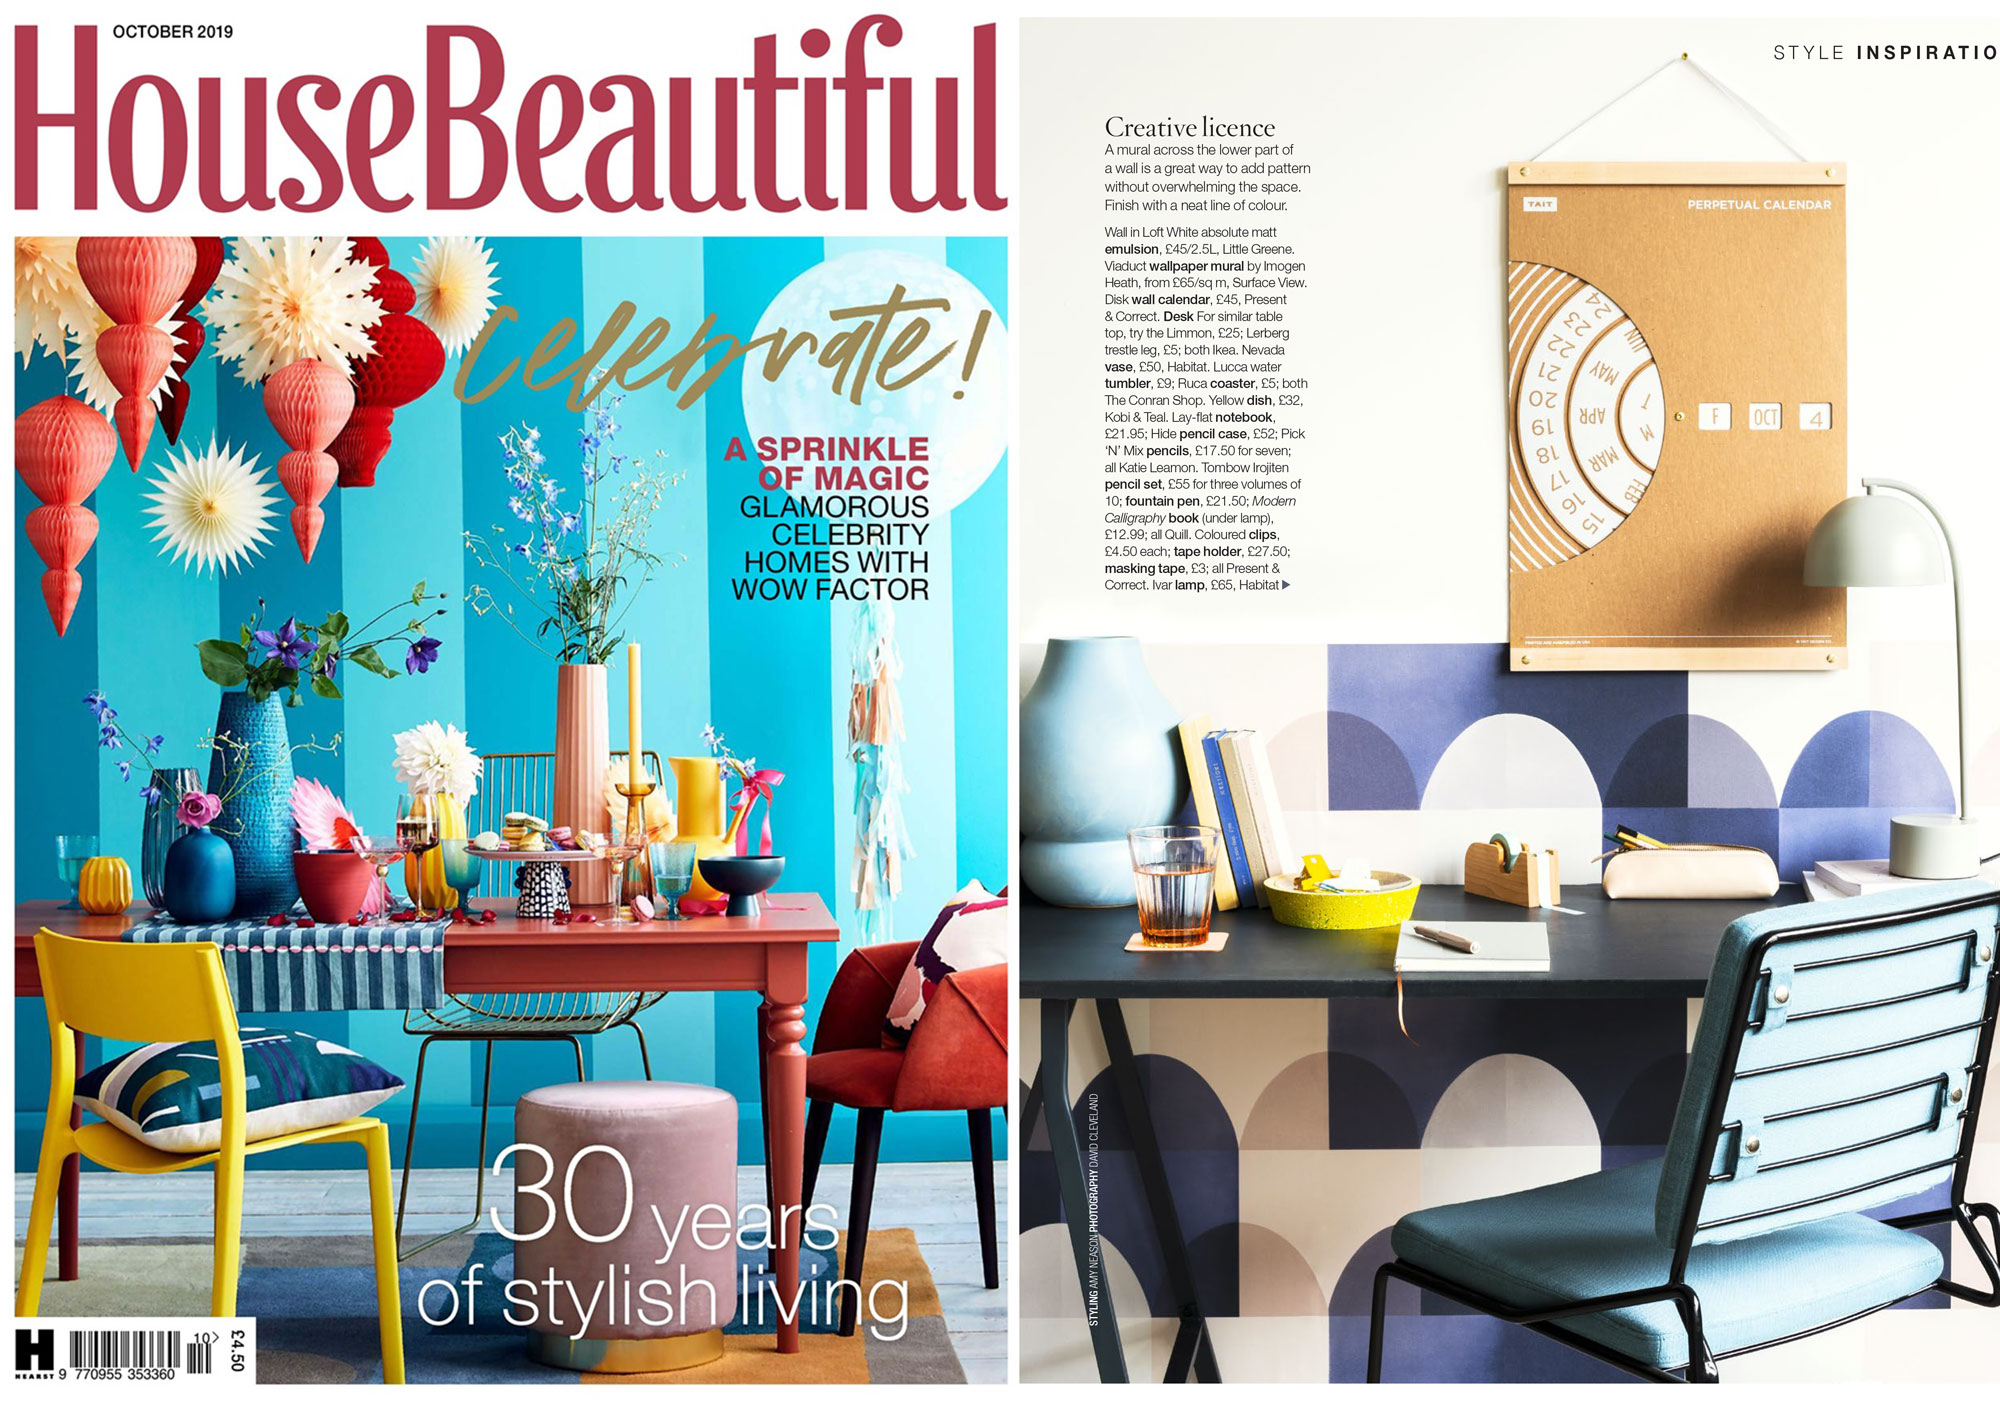 House Beautiful October 2019